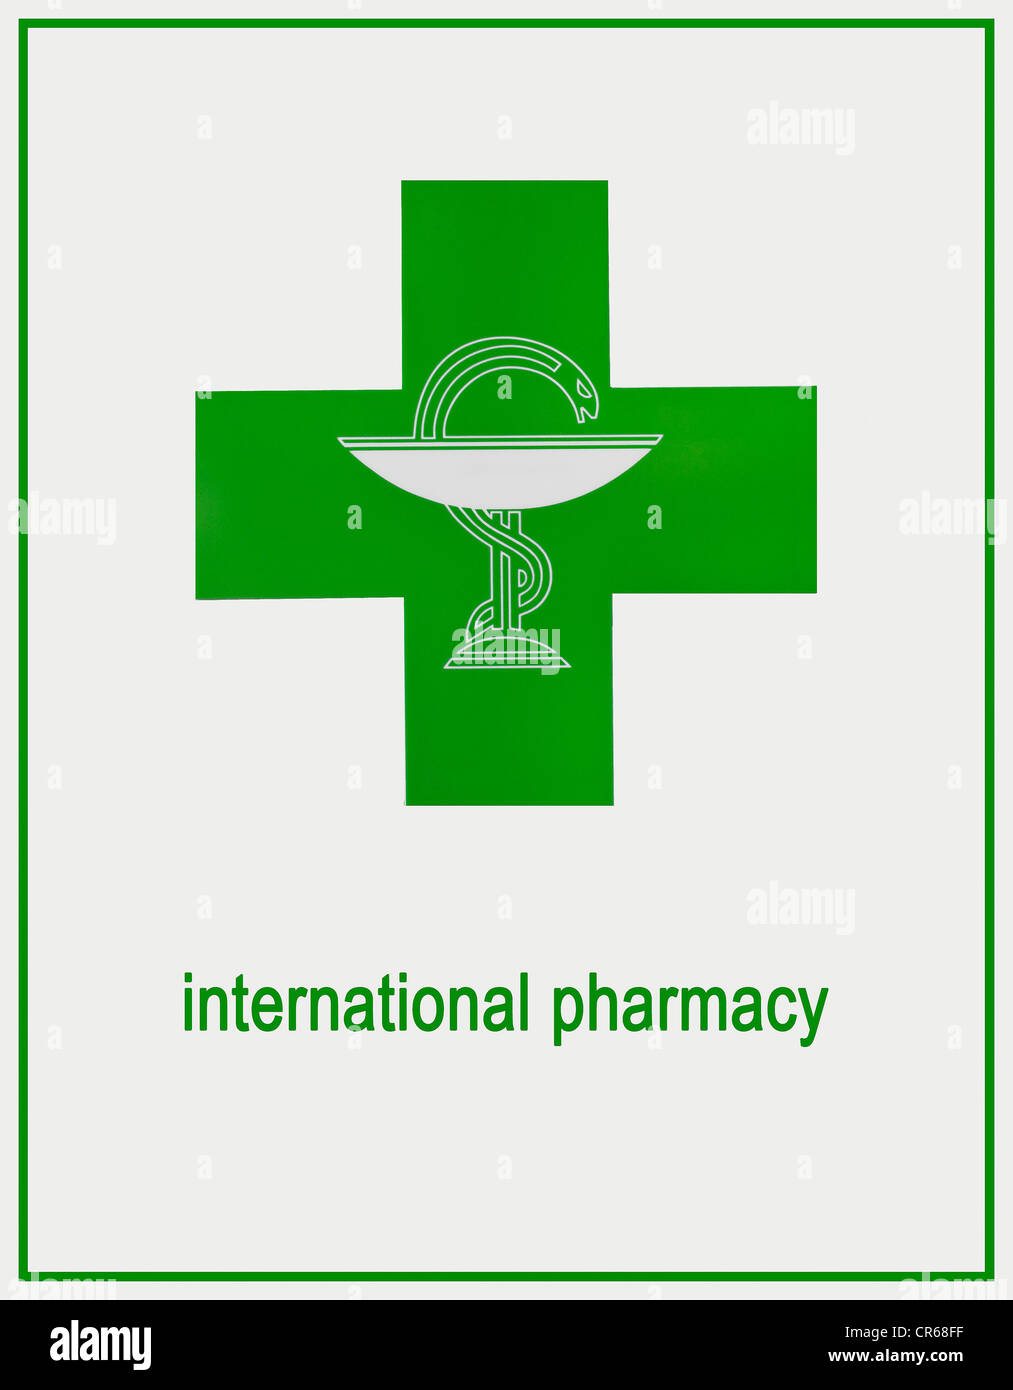 International pharmacy sign, green logo with Aesculapian snake - Stock Image